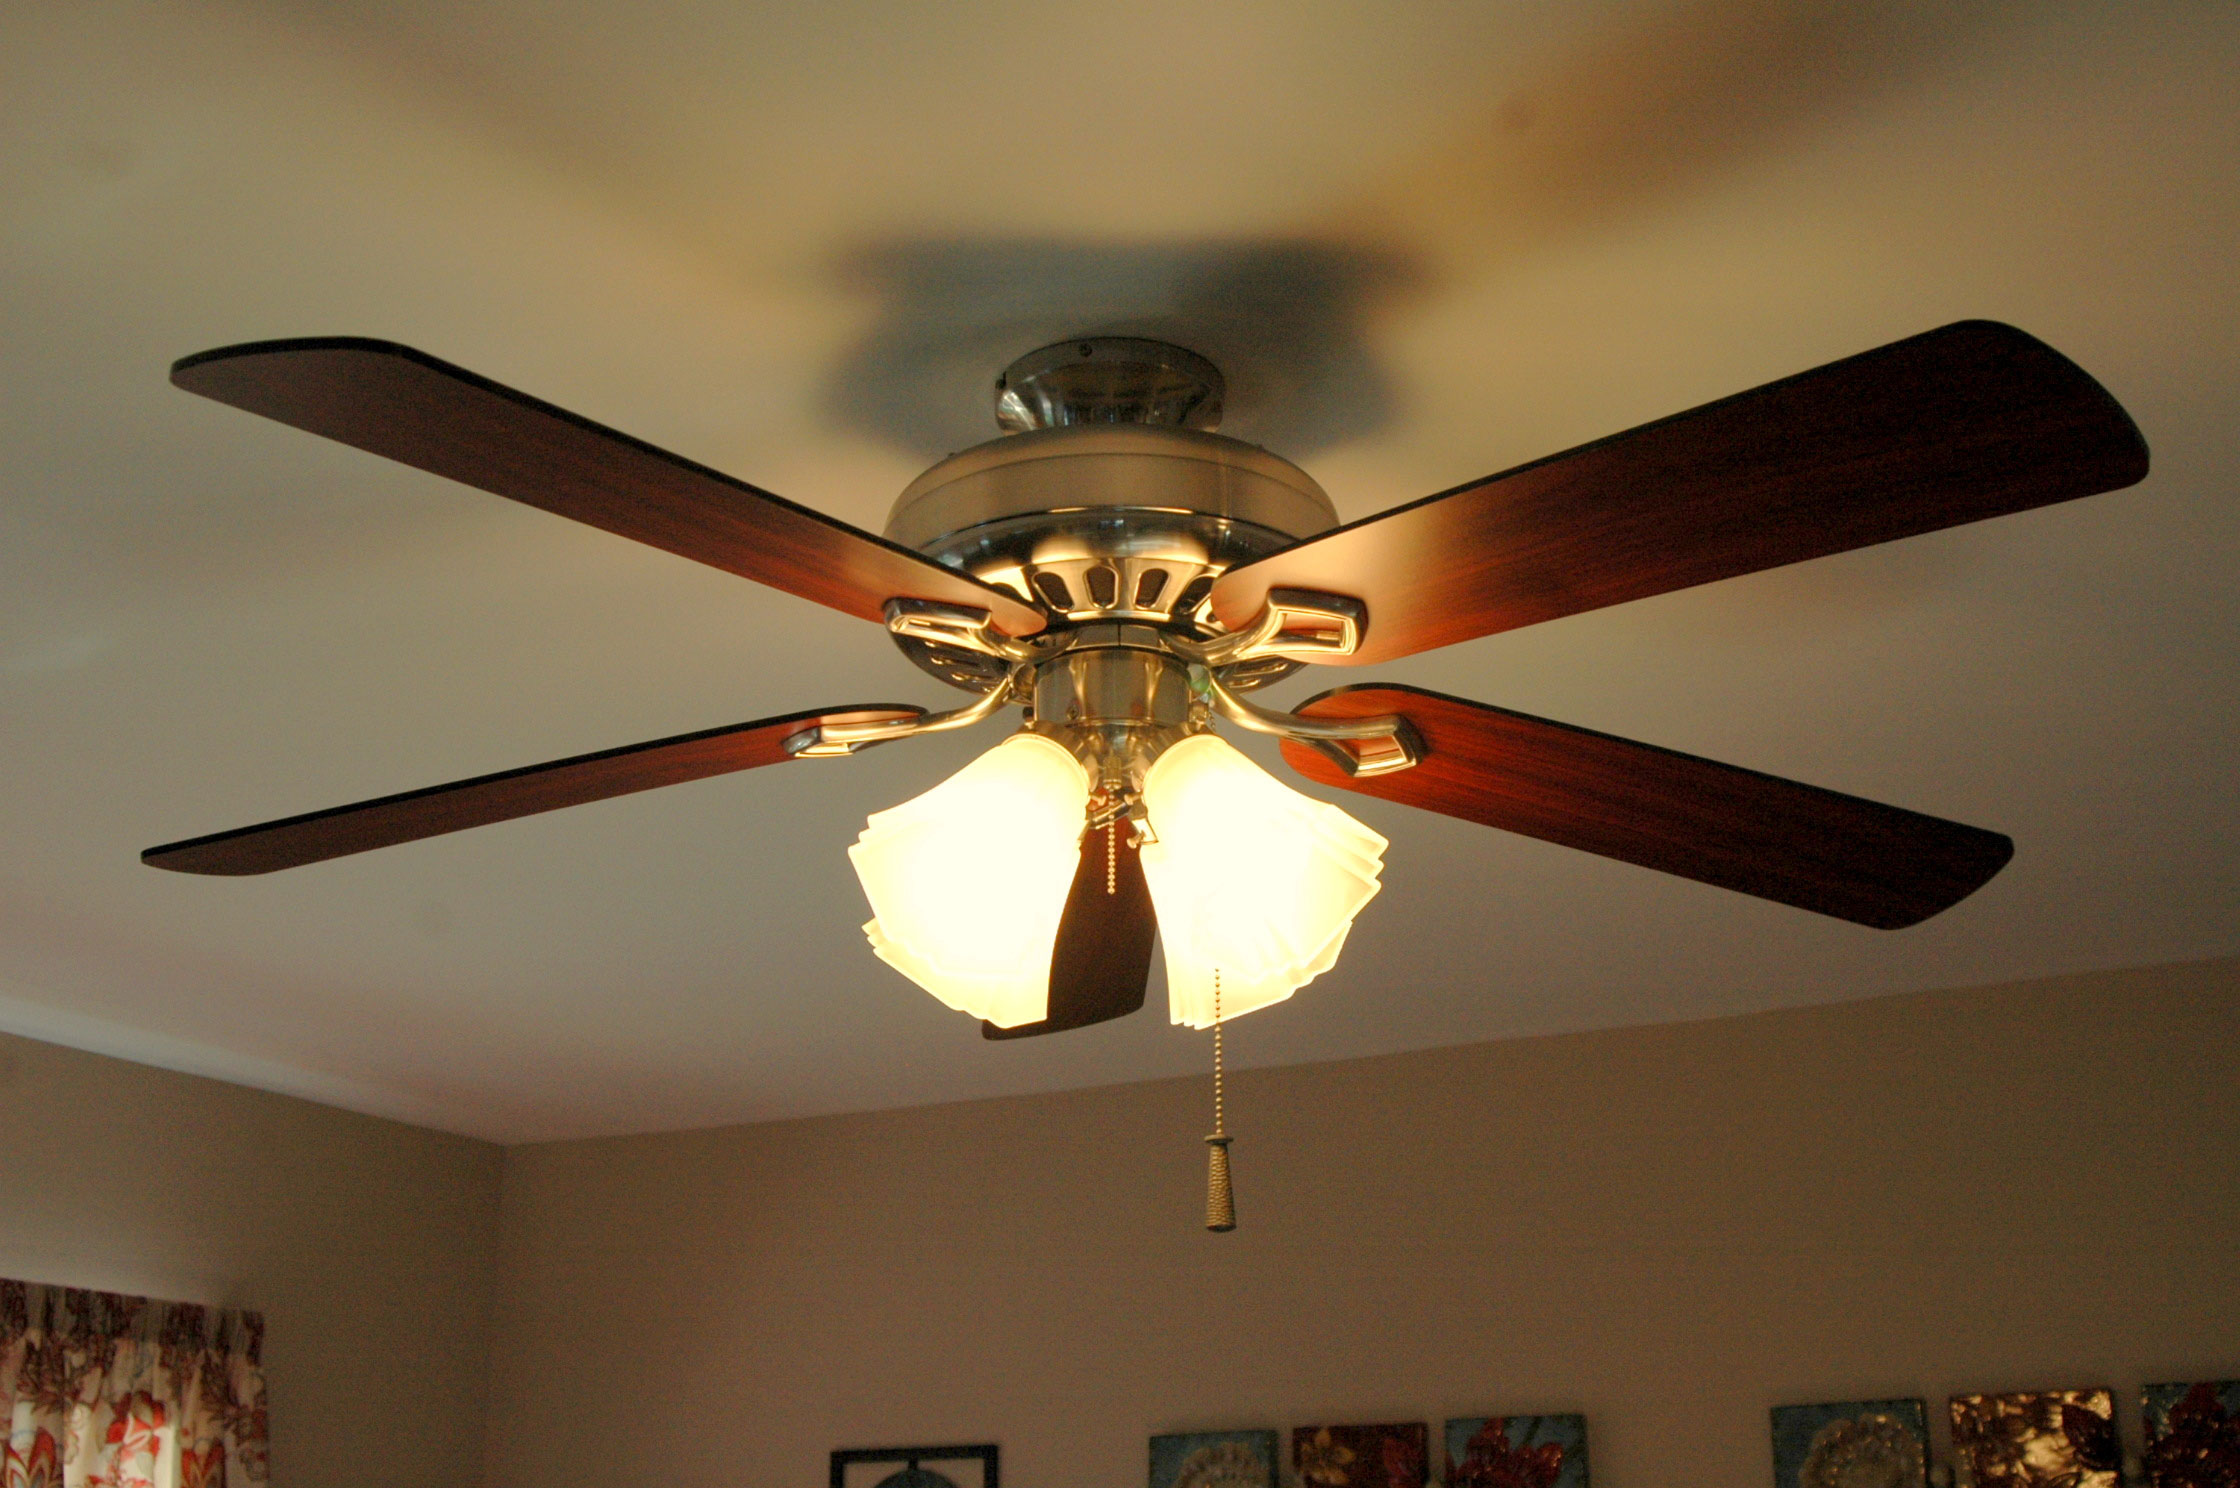 ceiling fan atau kipas angin gantung